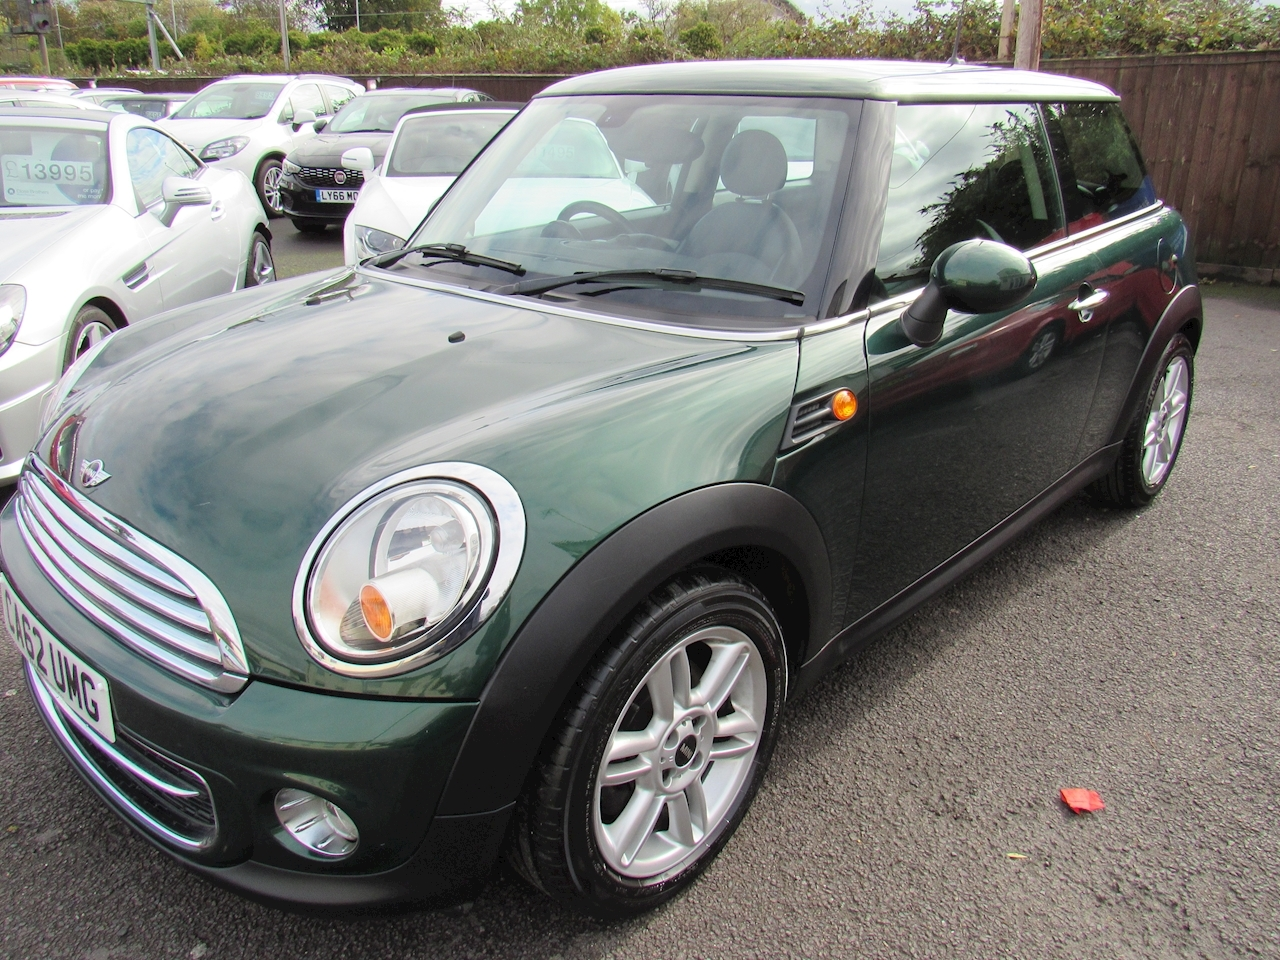 MINI Hatch Cooper D Hatch Hatchback 1.6 Manual Diesel